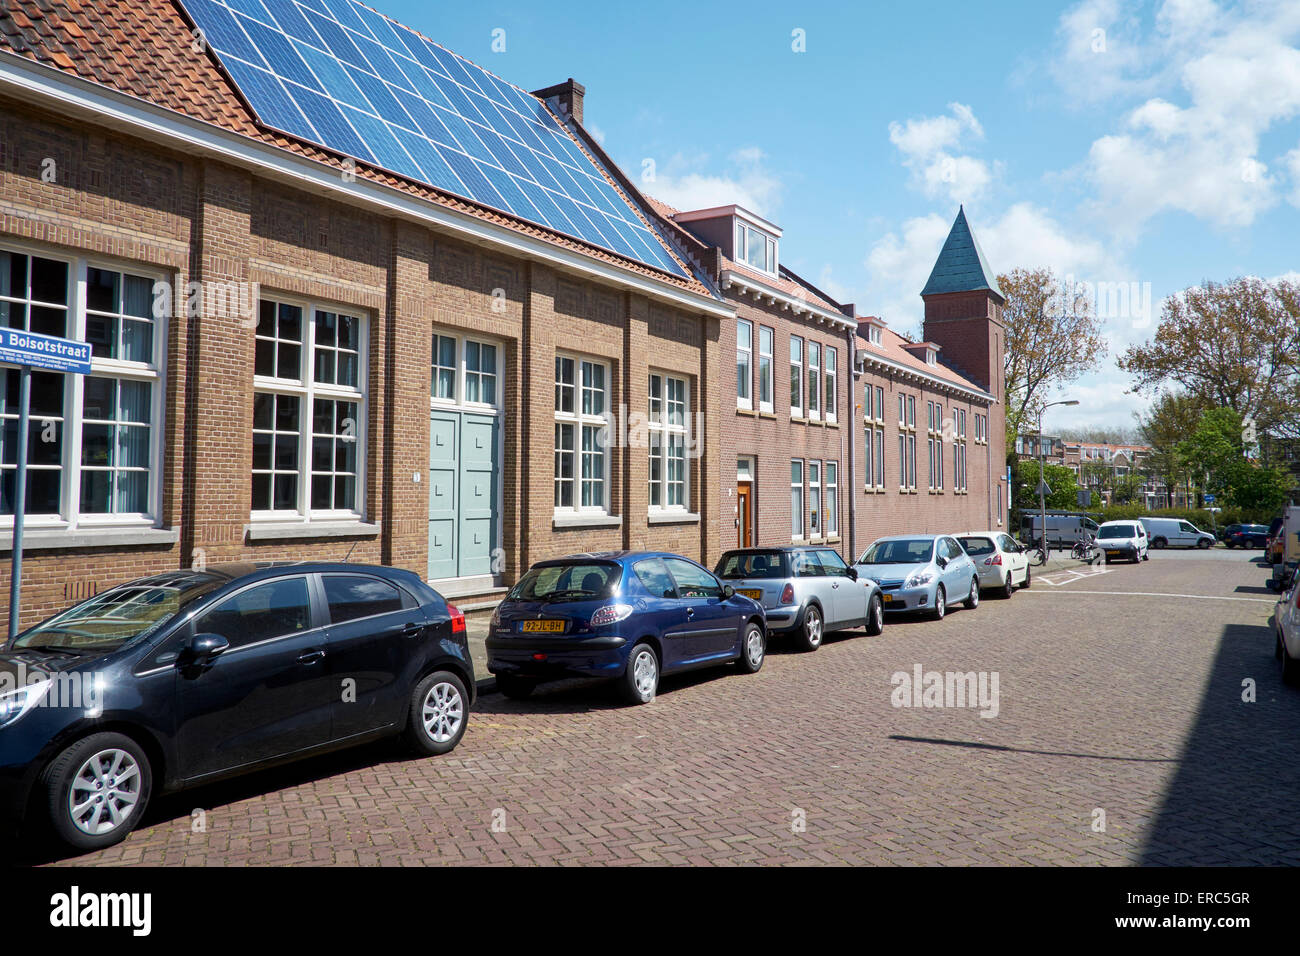 Solar panels on a community building in The Hague, Netherlands - Stock Image